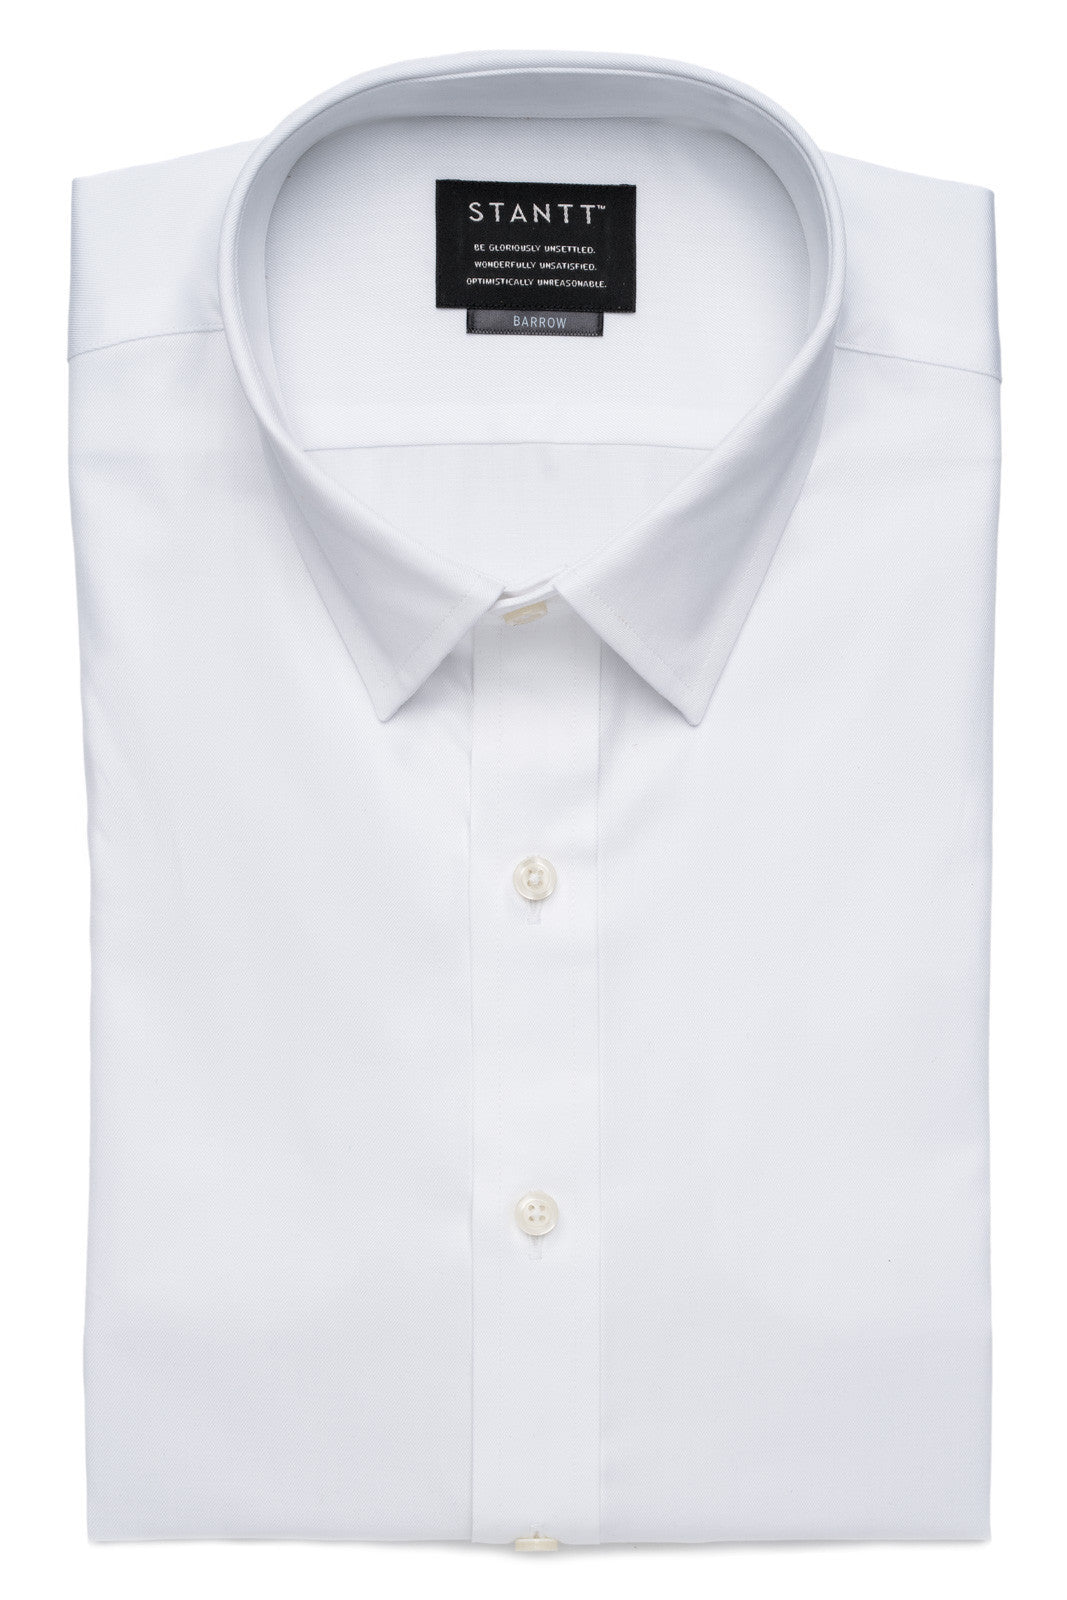 Fine White Twill: Cutaway Collar, French Cuff